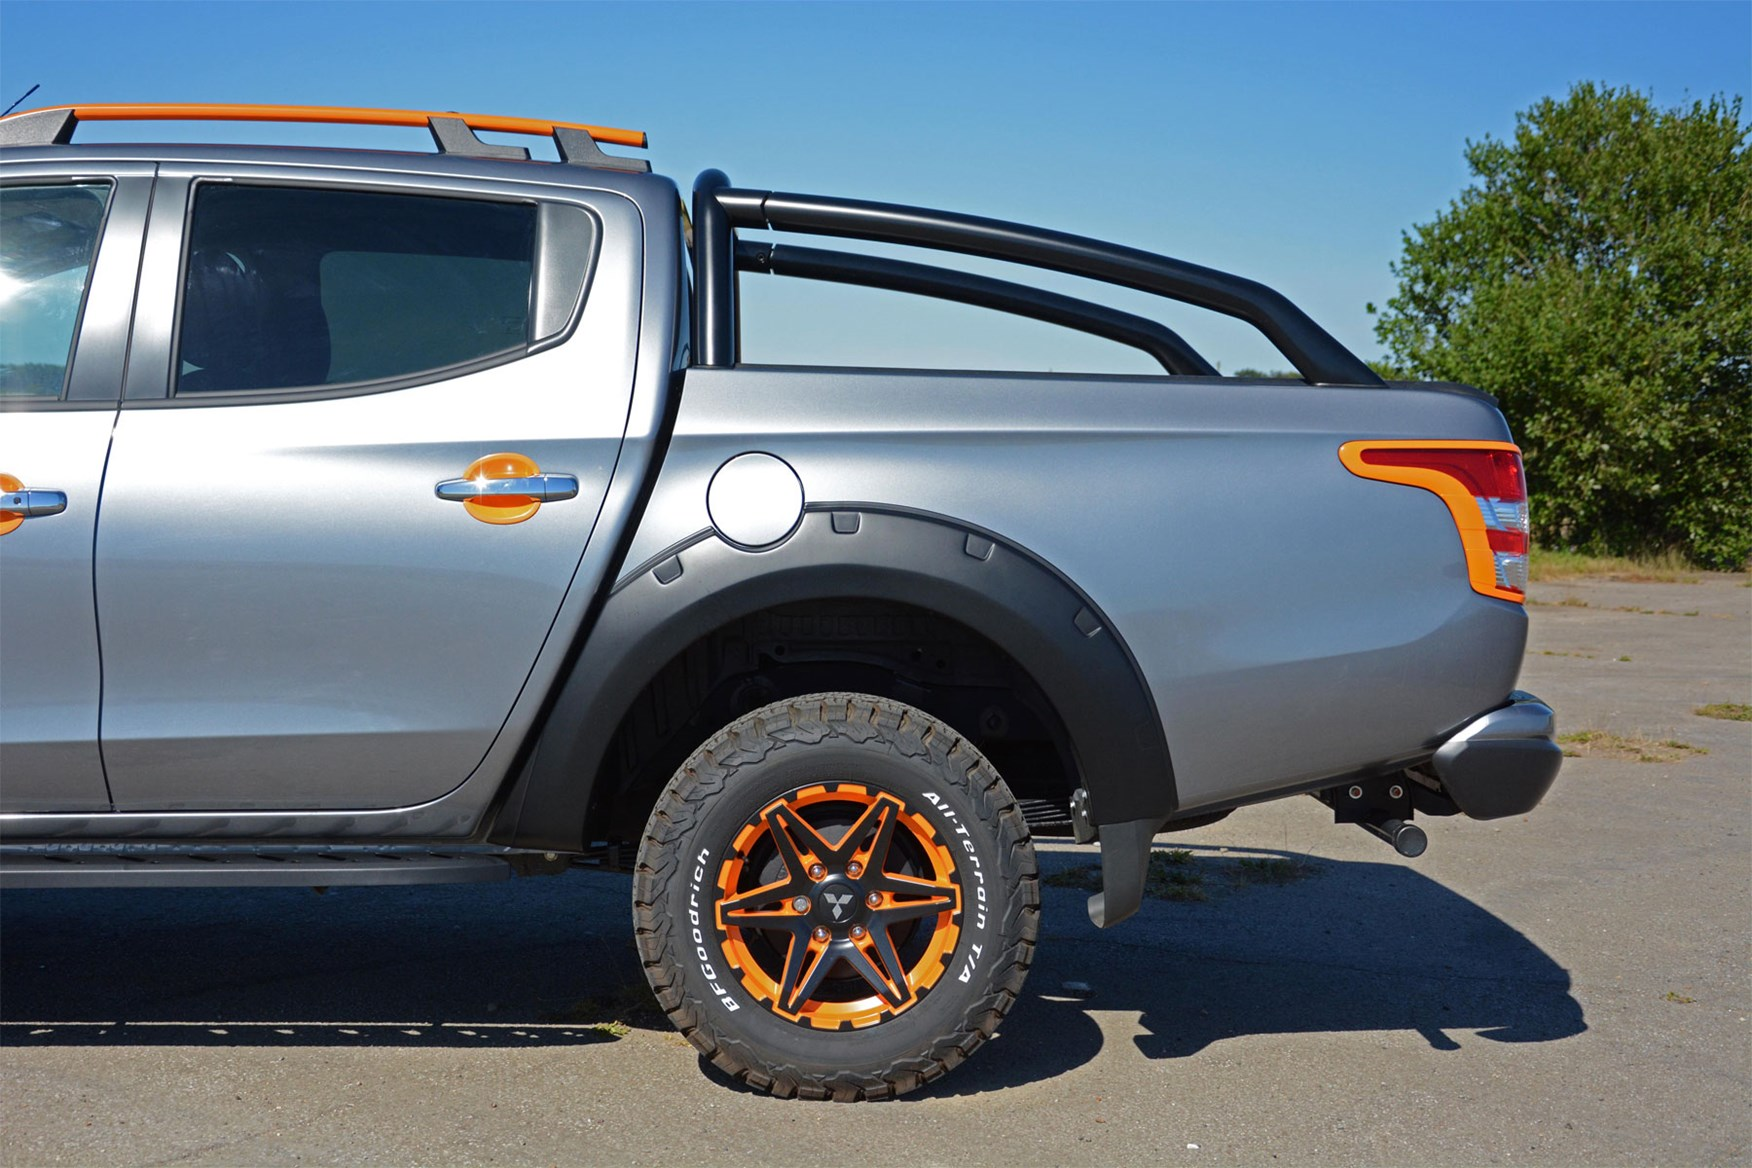 Mitsubishi L200 Barbarian SVP II review - rear side detail showing wheels, tyres, arch extensions, light surrounds